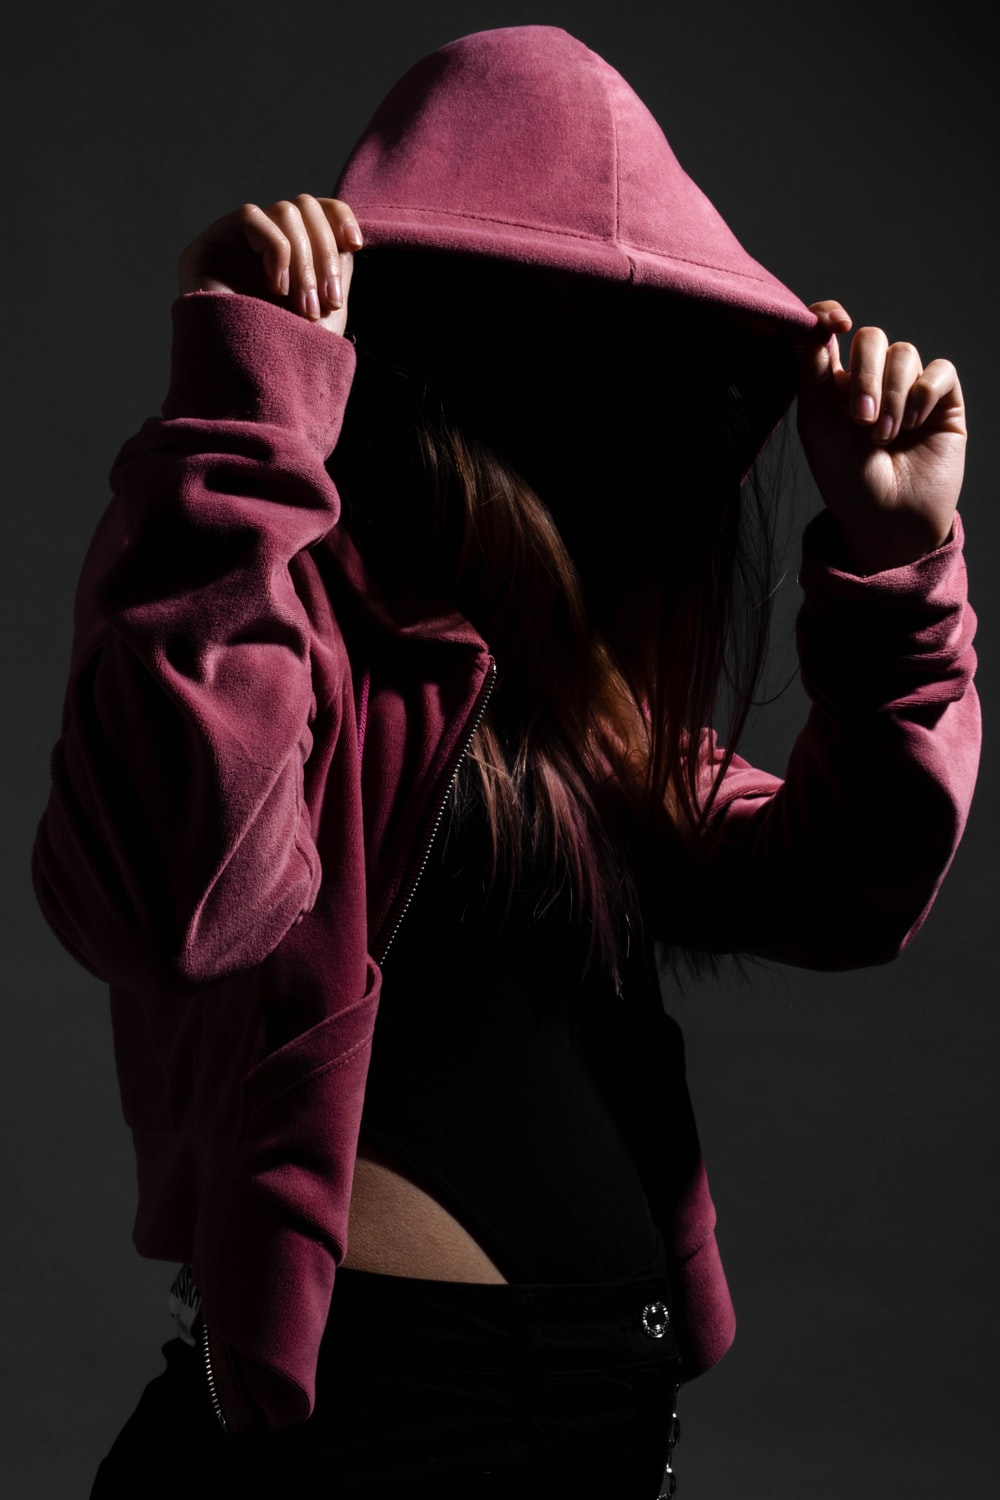 woman in pink hoodie covering her face with her hands